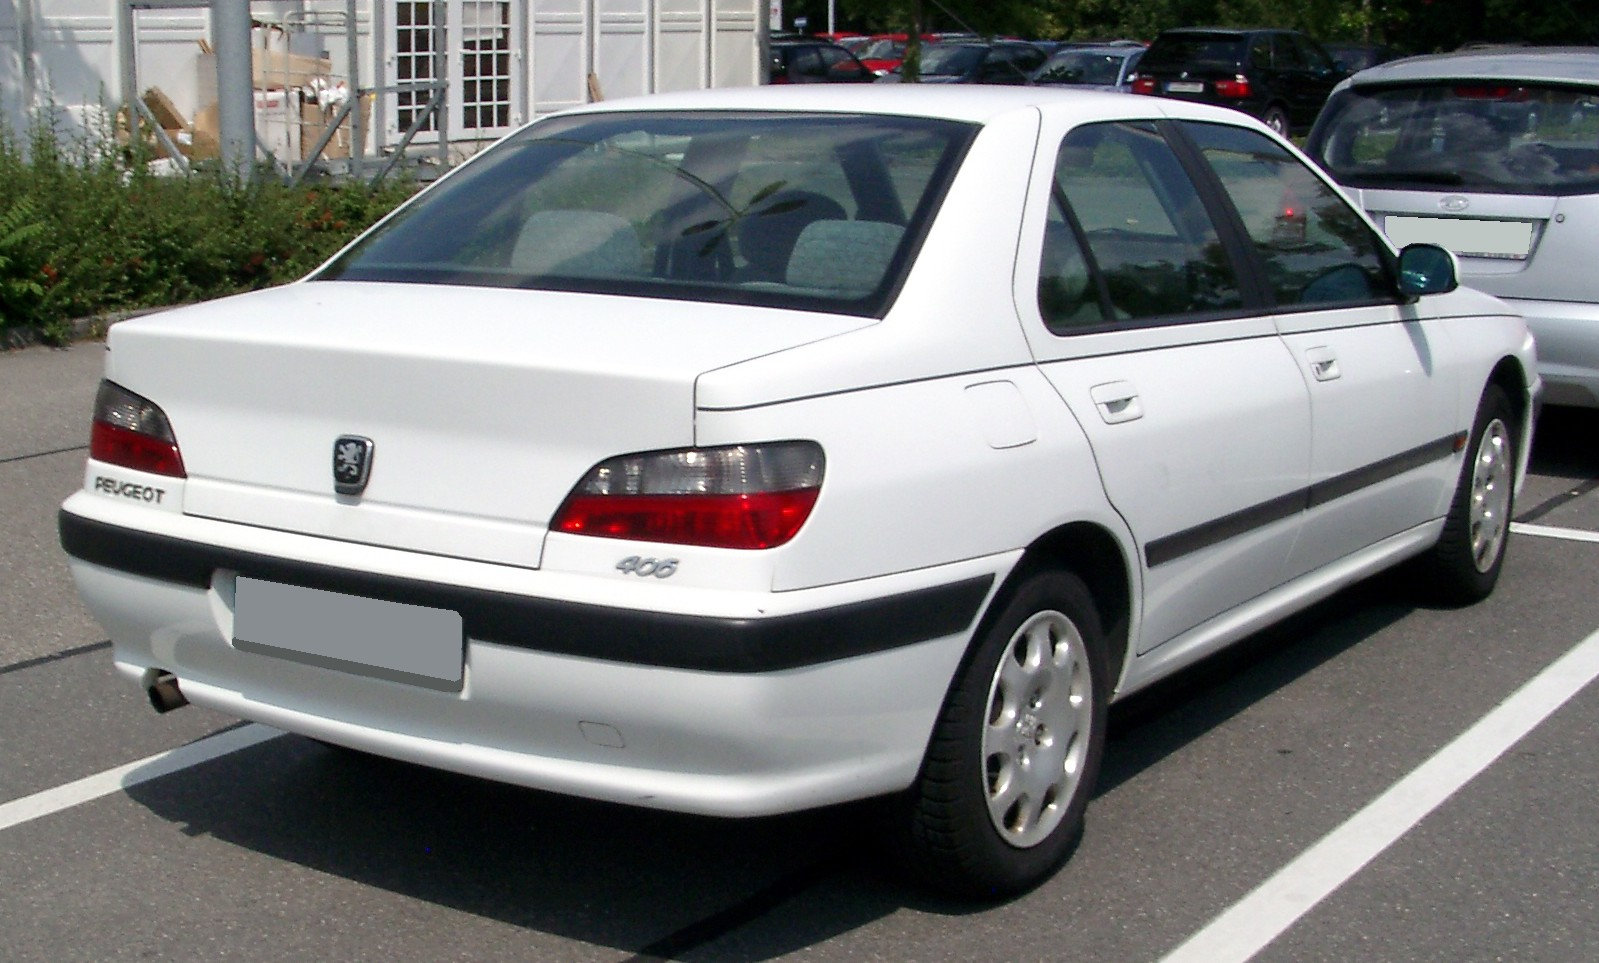 peugeot 406 1995 2003 coupe outstanding cars rh carsot com Peugeot 406 ManualDownload Peugeot 406 Manual- Engine